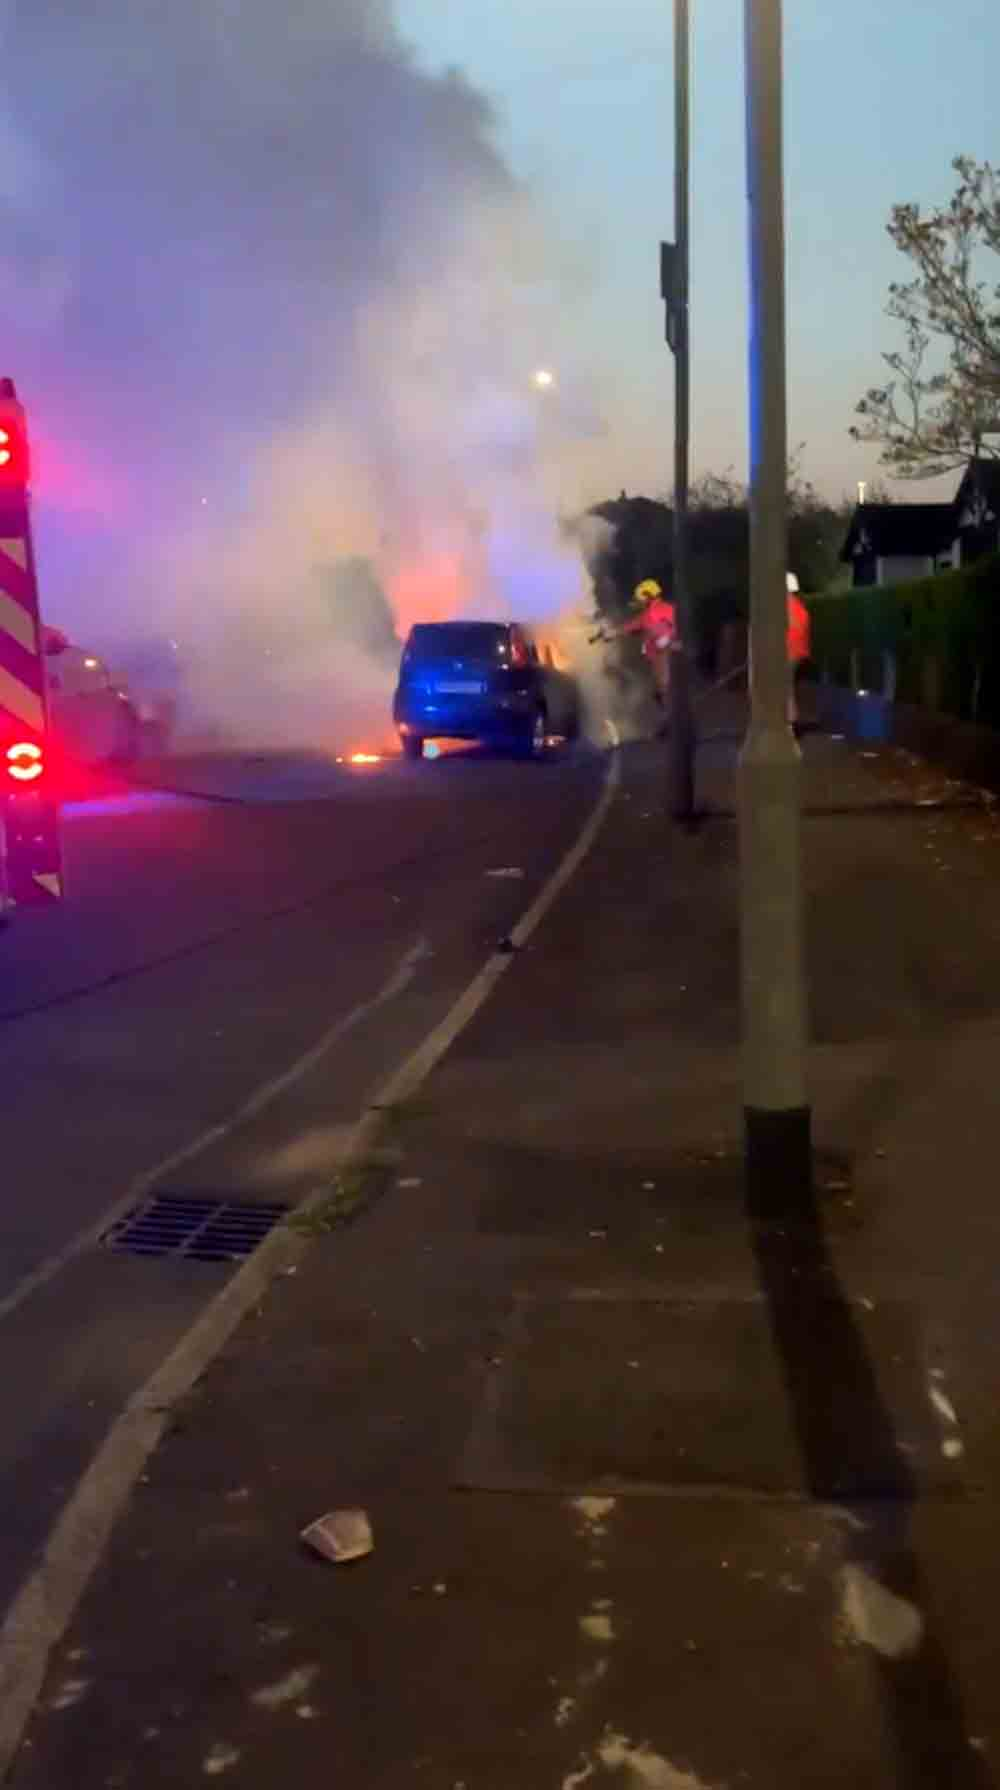 Dramatic footage shows car completely engulfed in flames - Video News